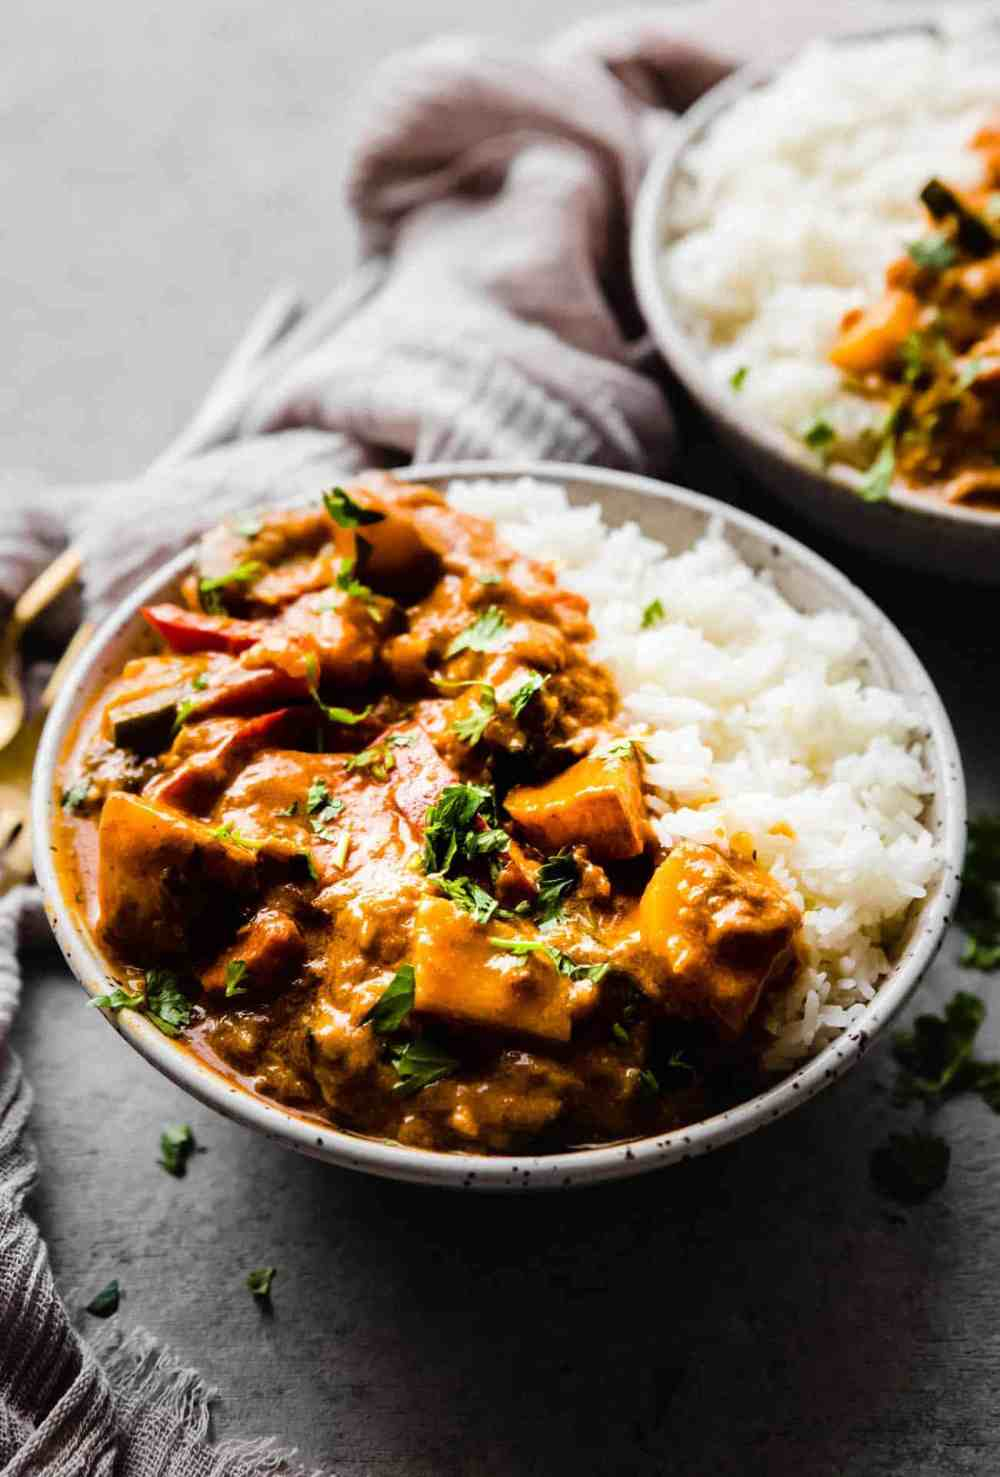 red curry in a bowl with white rice and cilantro on top